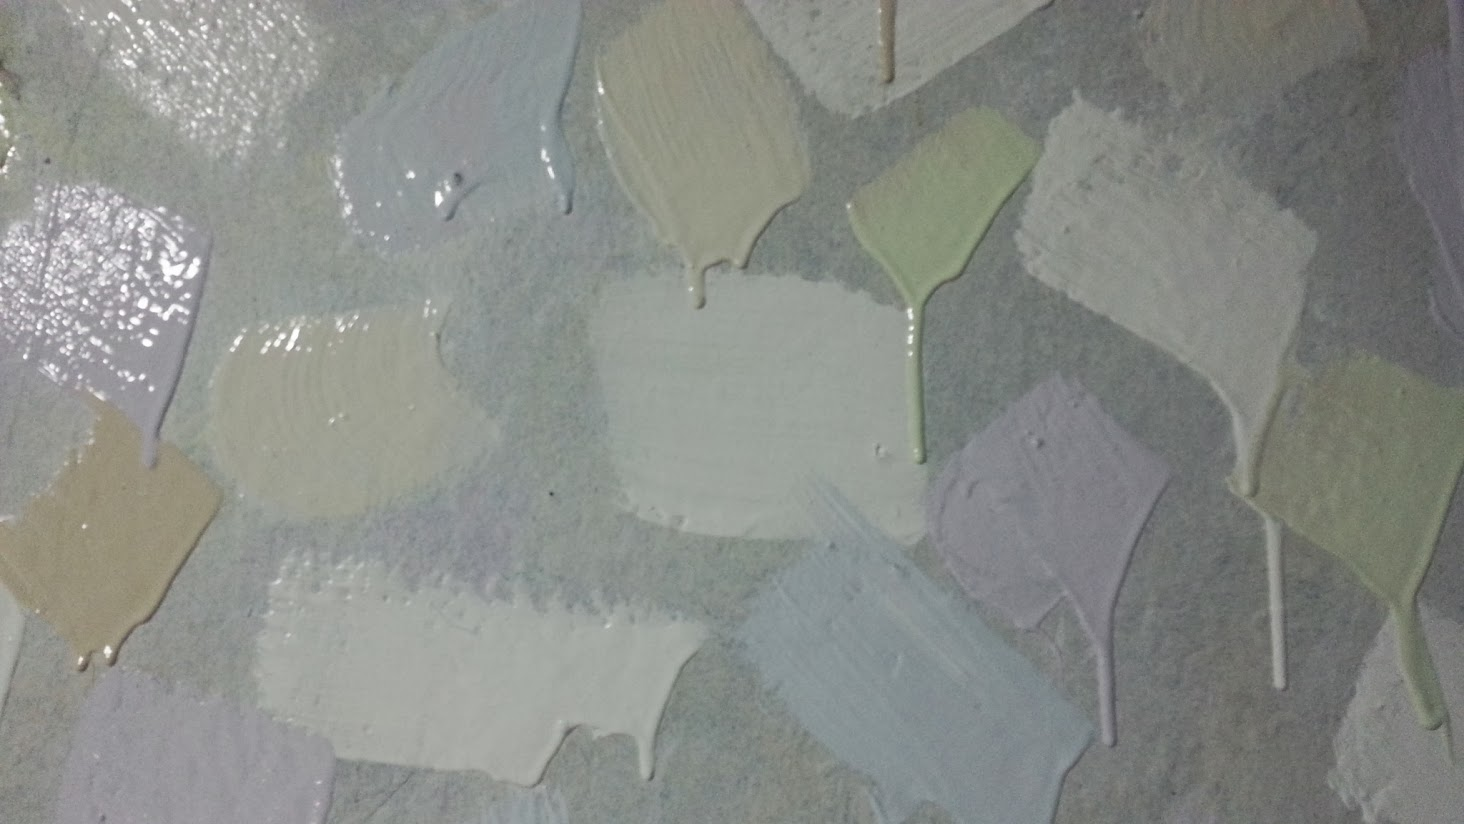 detail of multi-pastel brush strokes showing paint dripping down the wall